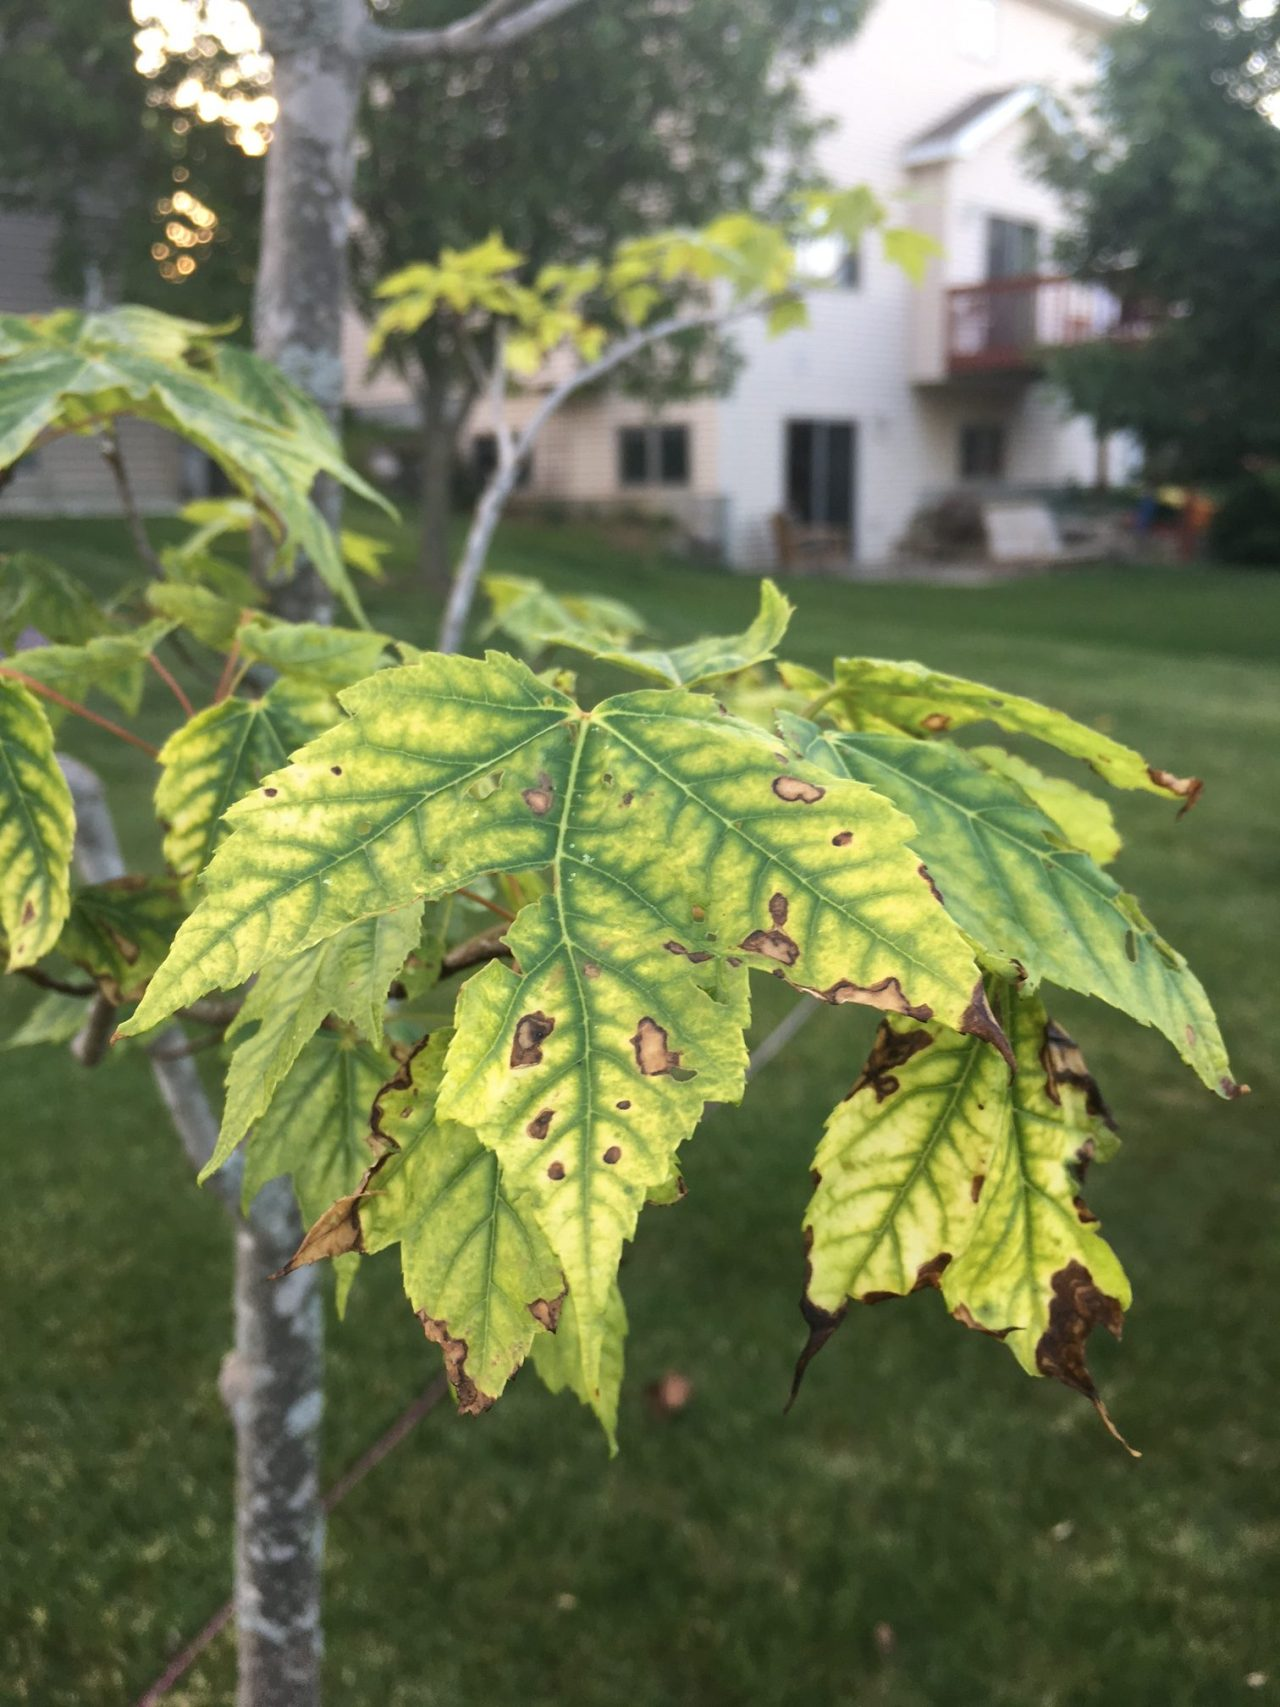 Tree with chlorosis